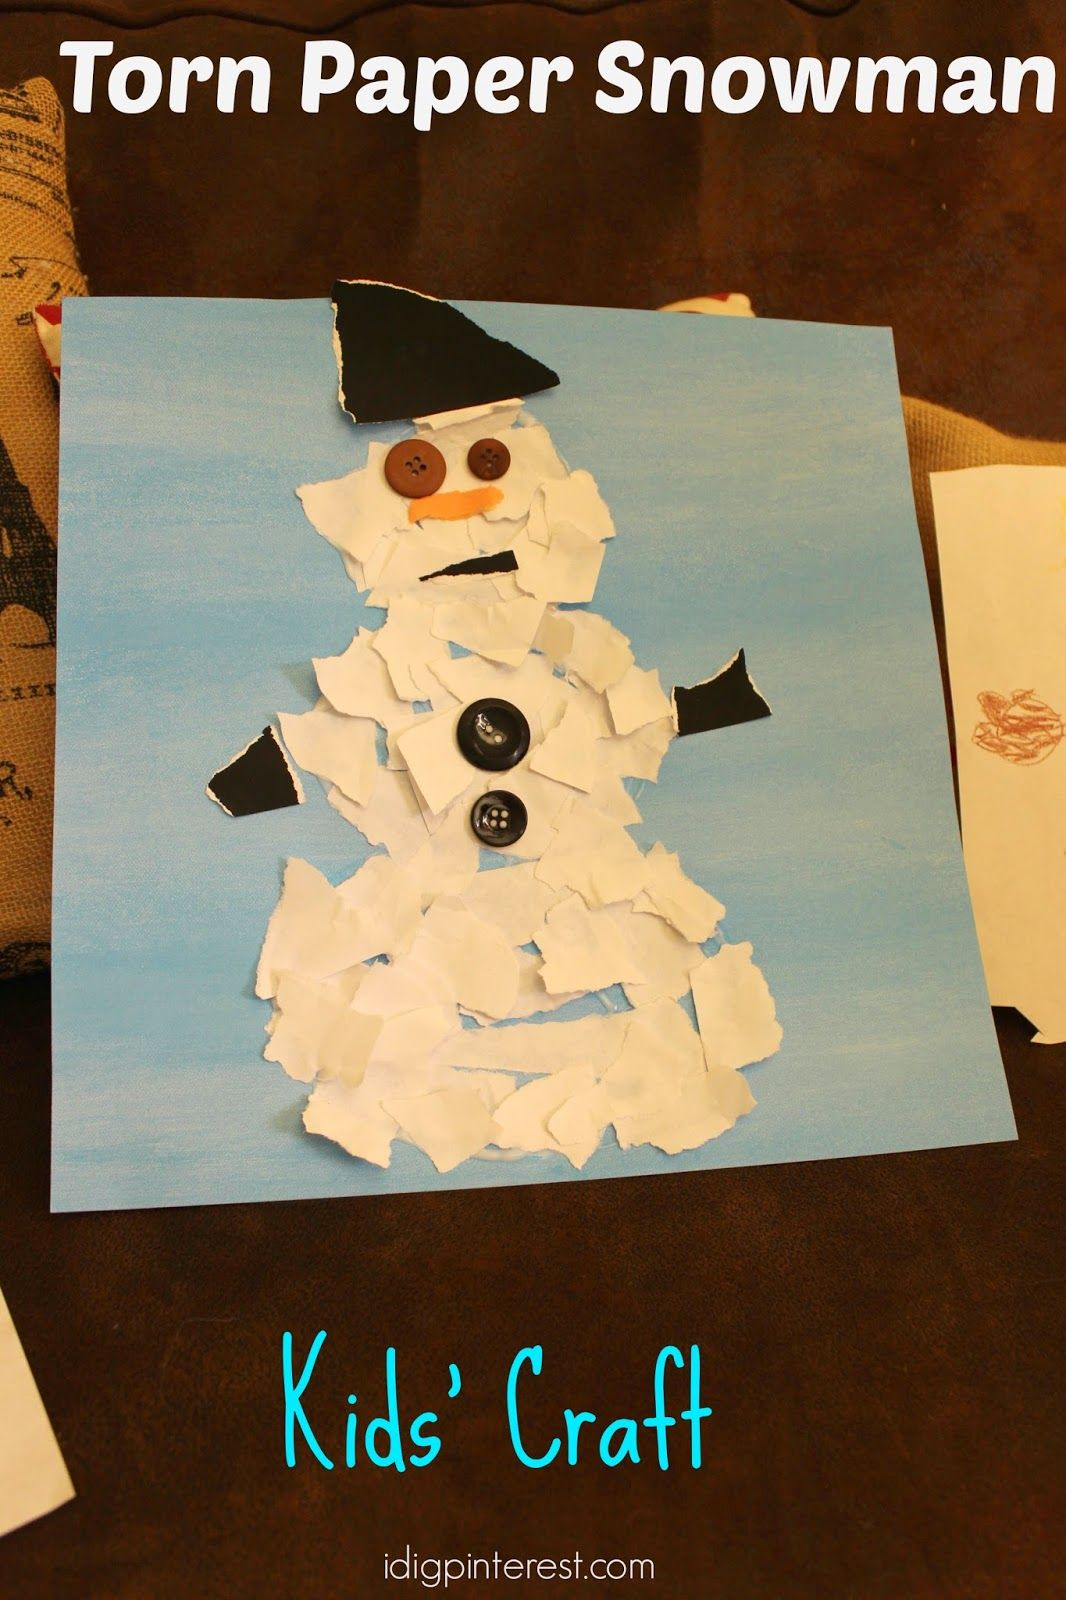 Torn Paper Snowman Kids' Craft and How to Easily Clean the Mess Afterwards! from idigpinterest.com